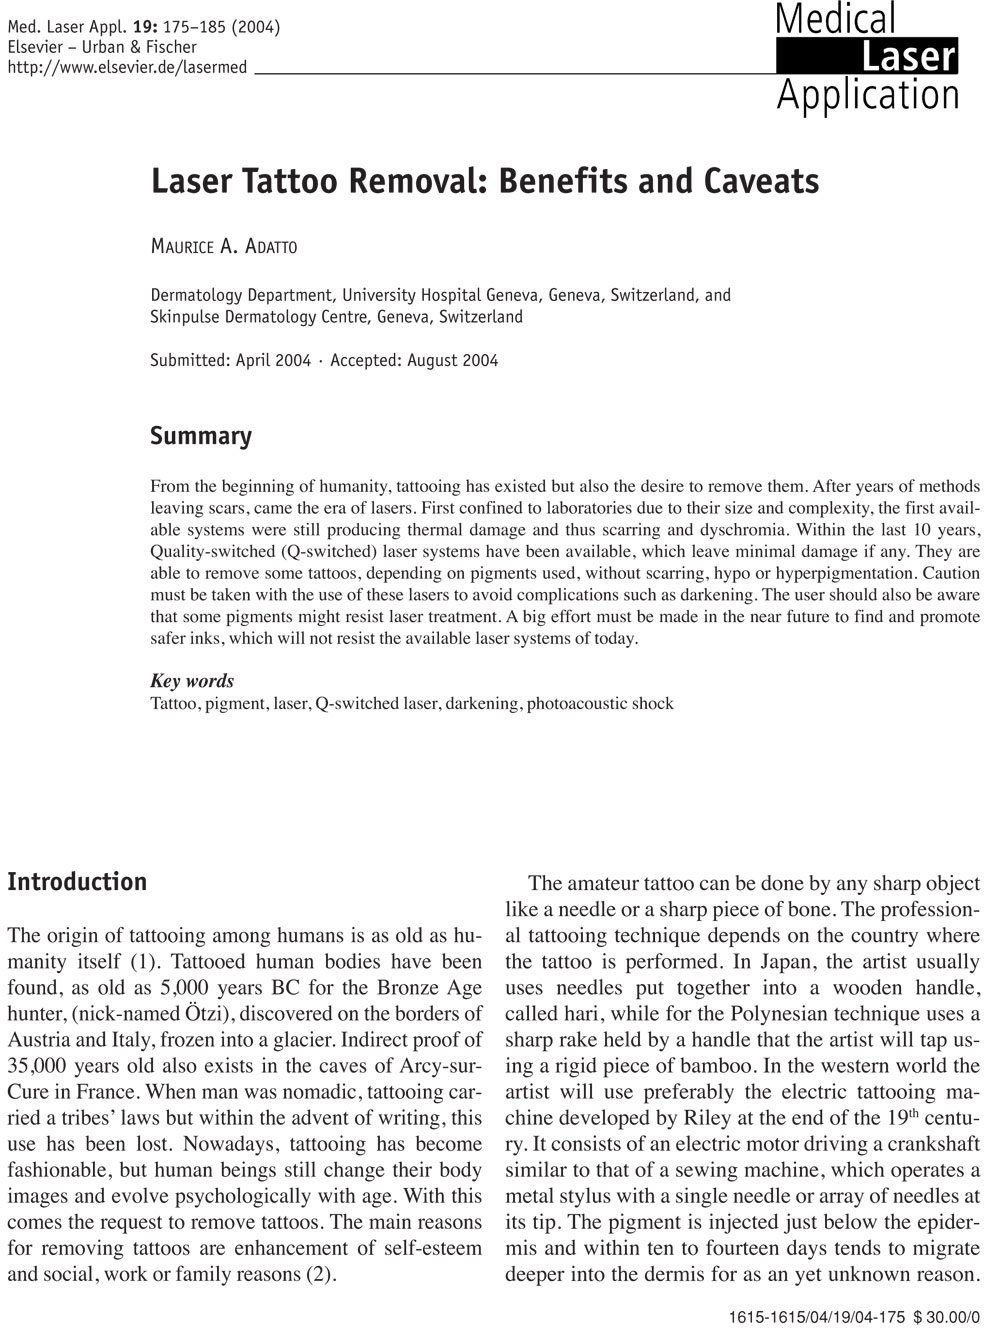 Laser_Tattoo_Removal_Benefits_and_Caveats-1